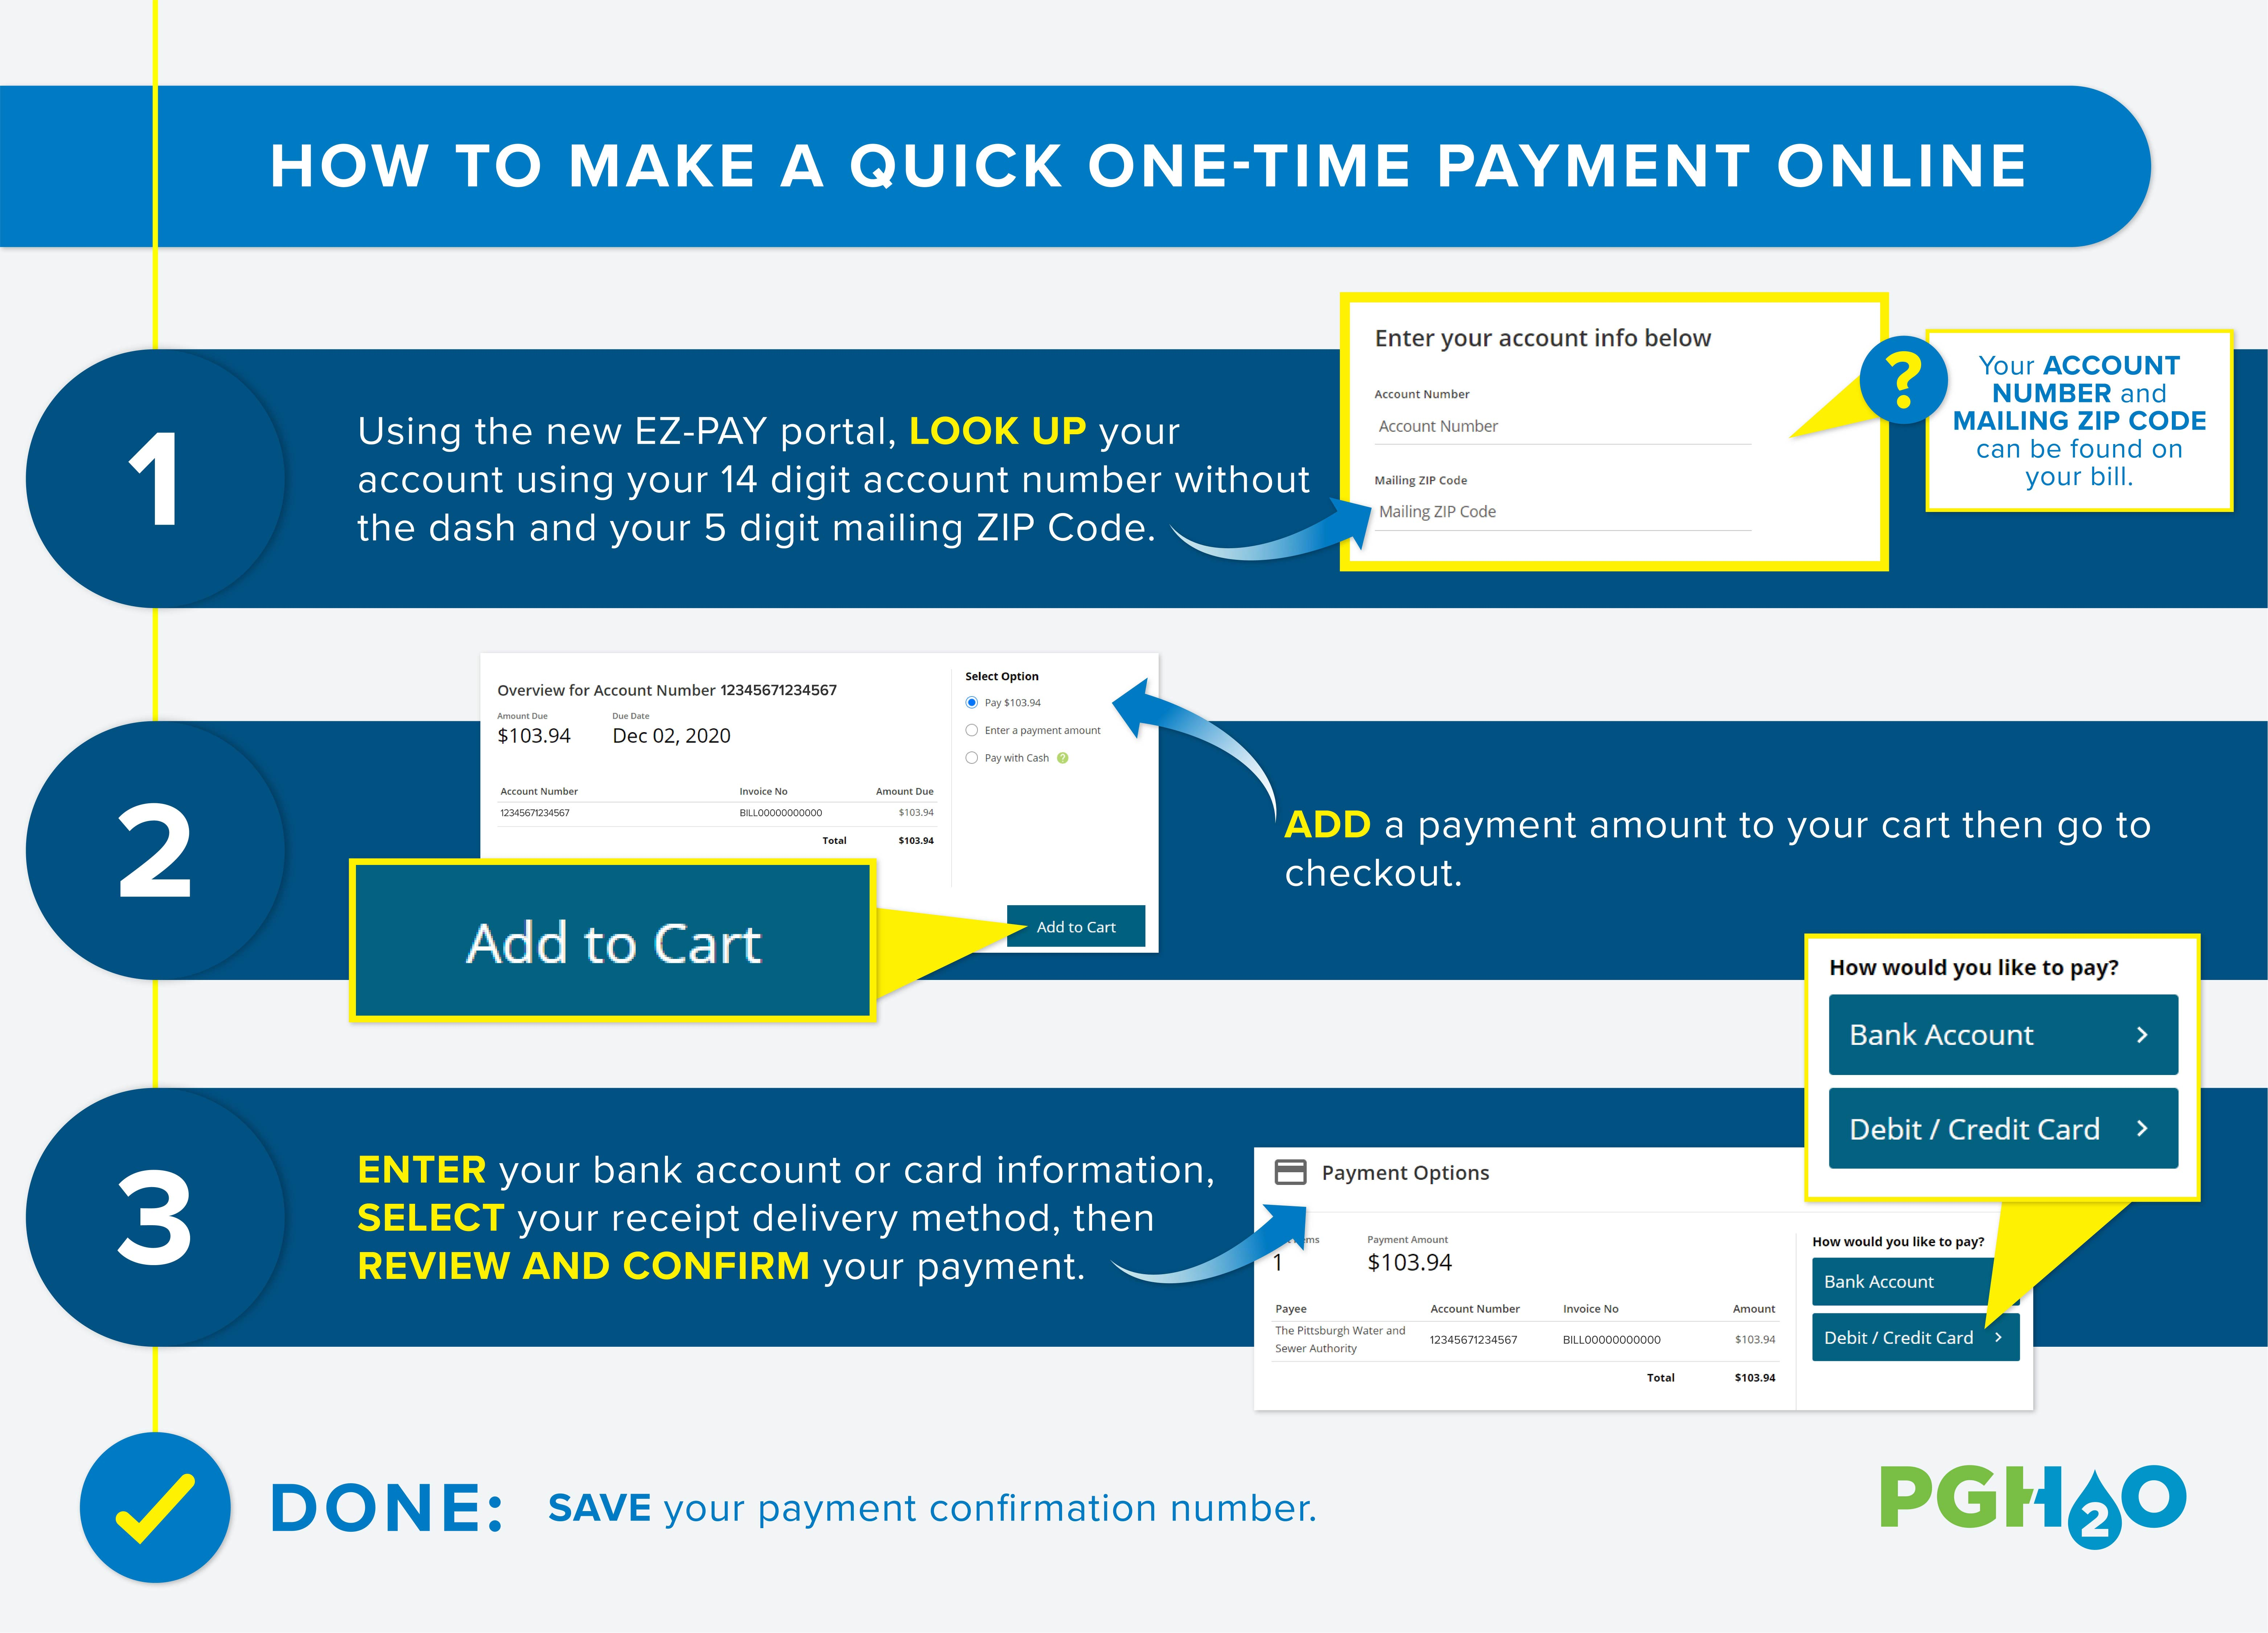 Infographic for How to Make a One-Time Payment Online. Using thenew EZ-PAY portal, look up your account using your 14 digit account number without the dash and your5 digitmailing ZIP Code. Add a payment amount to your cart then go to checkout. Enter yourbank account or card information, select your receipt delivery method, then review and confirm your payment. Done!Save your payment confirmation number.